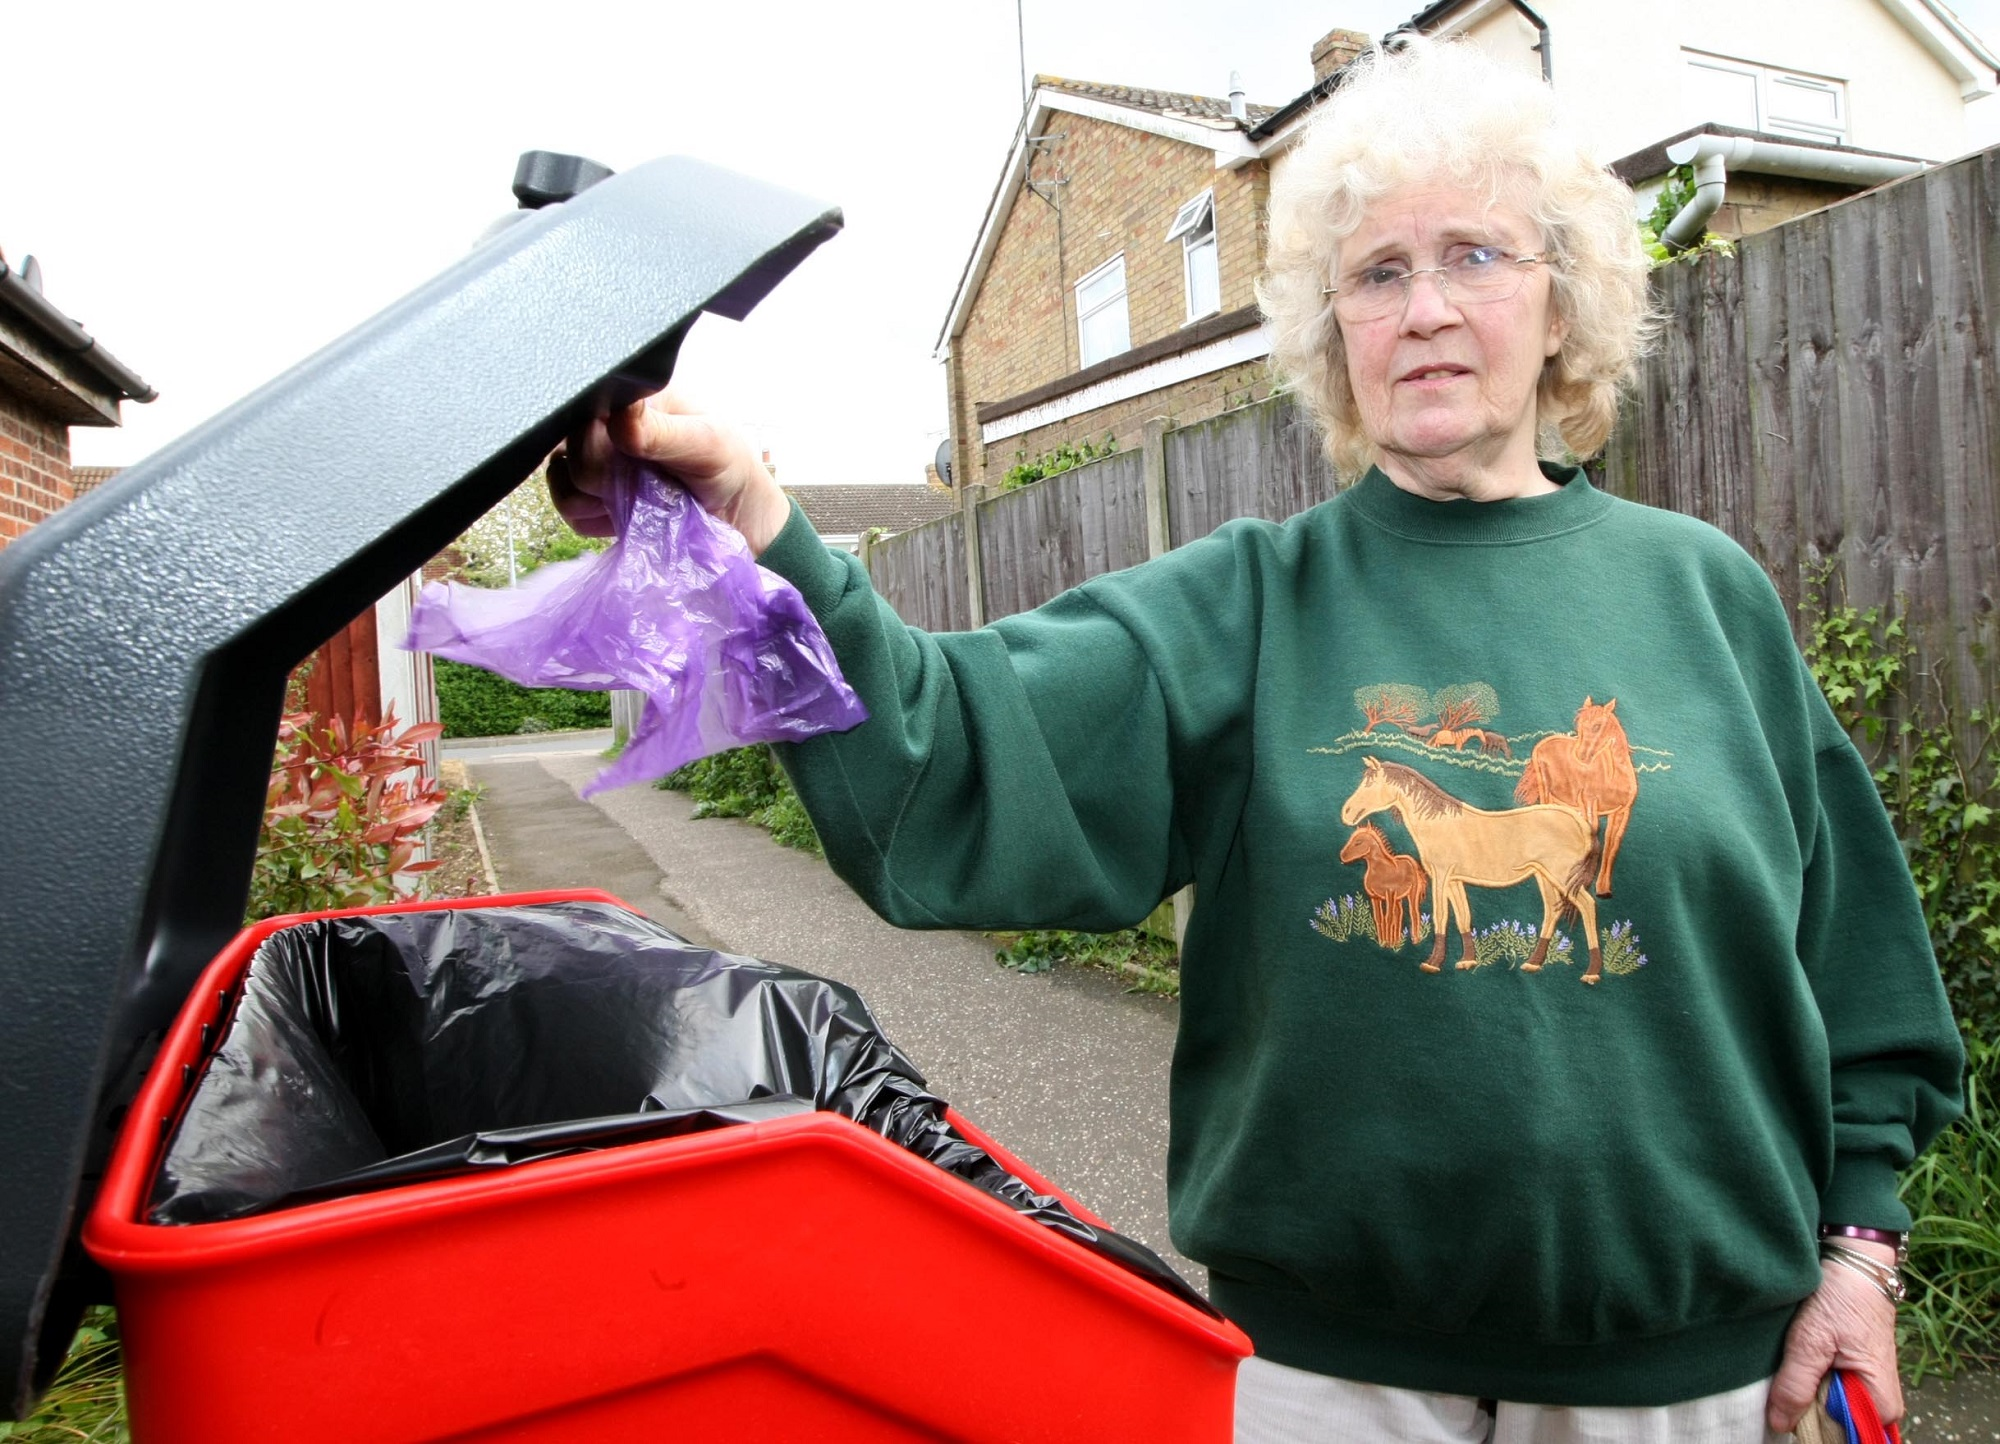 Cllr Una Norman is upset about the new charges to empty new dog mess bins